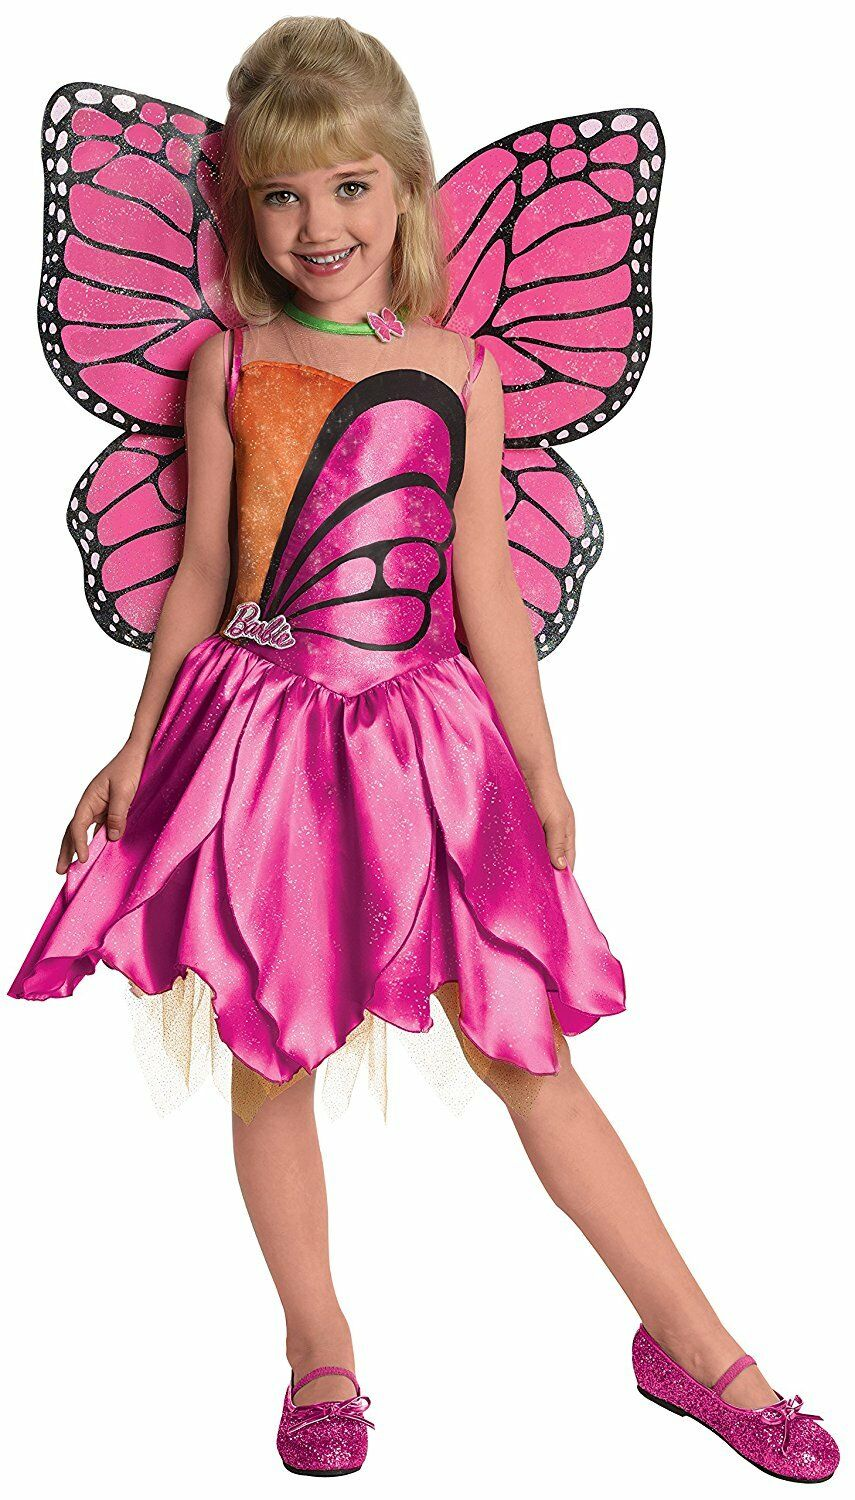 Mariposa Barbie Fairy Princess Fancy Dress Up Halloween Deluxe Child Costume 1 Of 1Only 4 Available